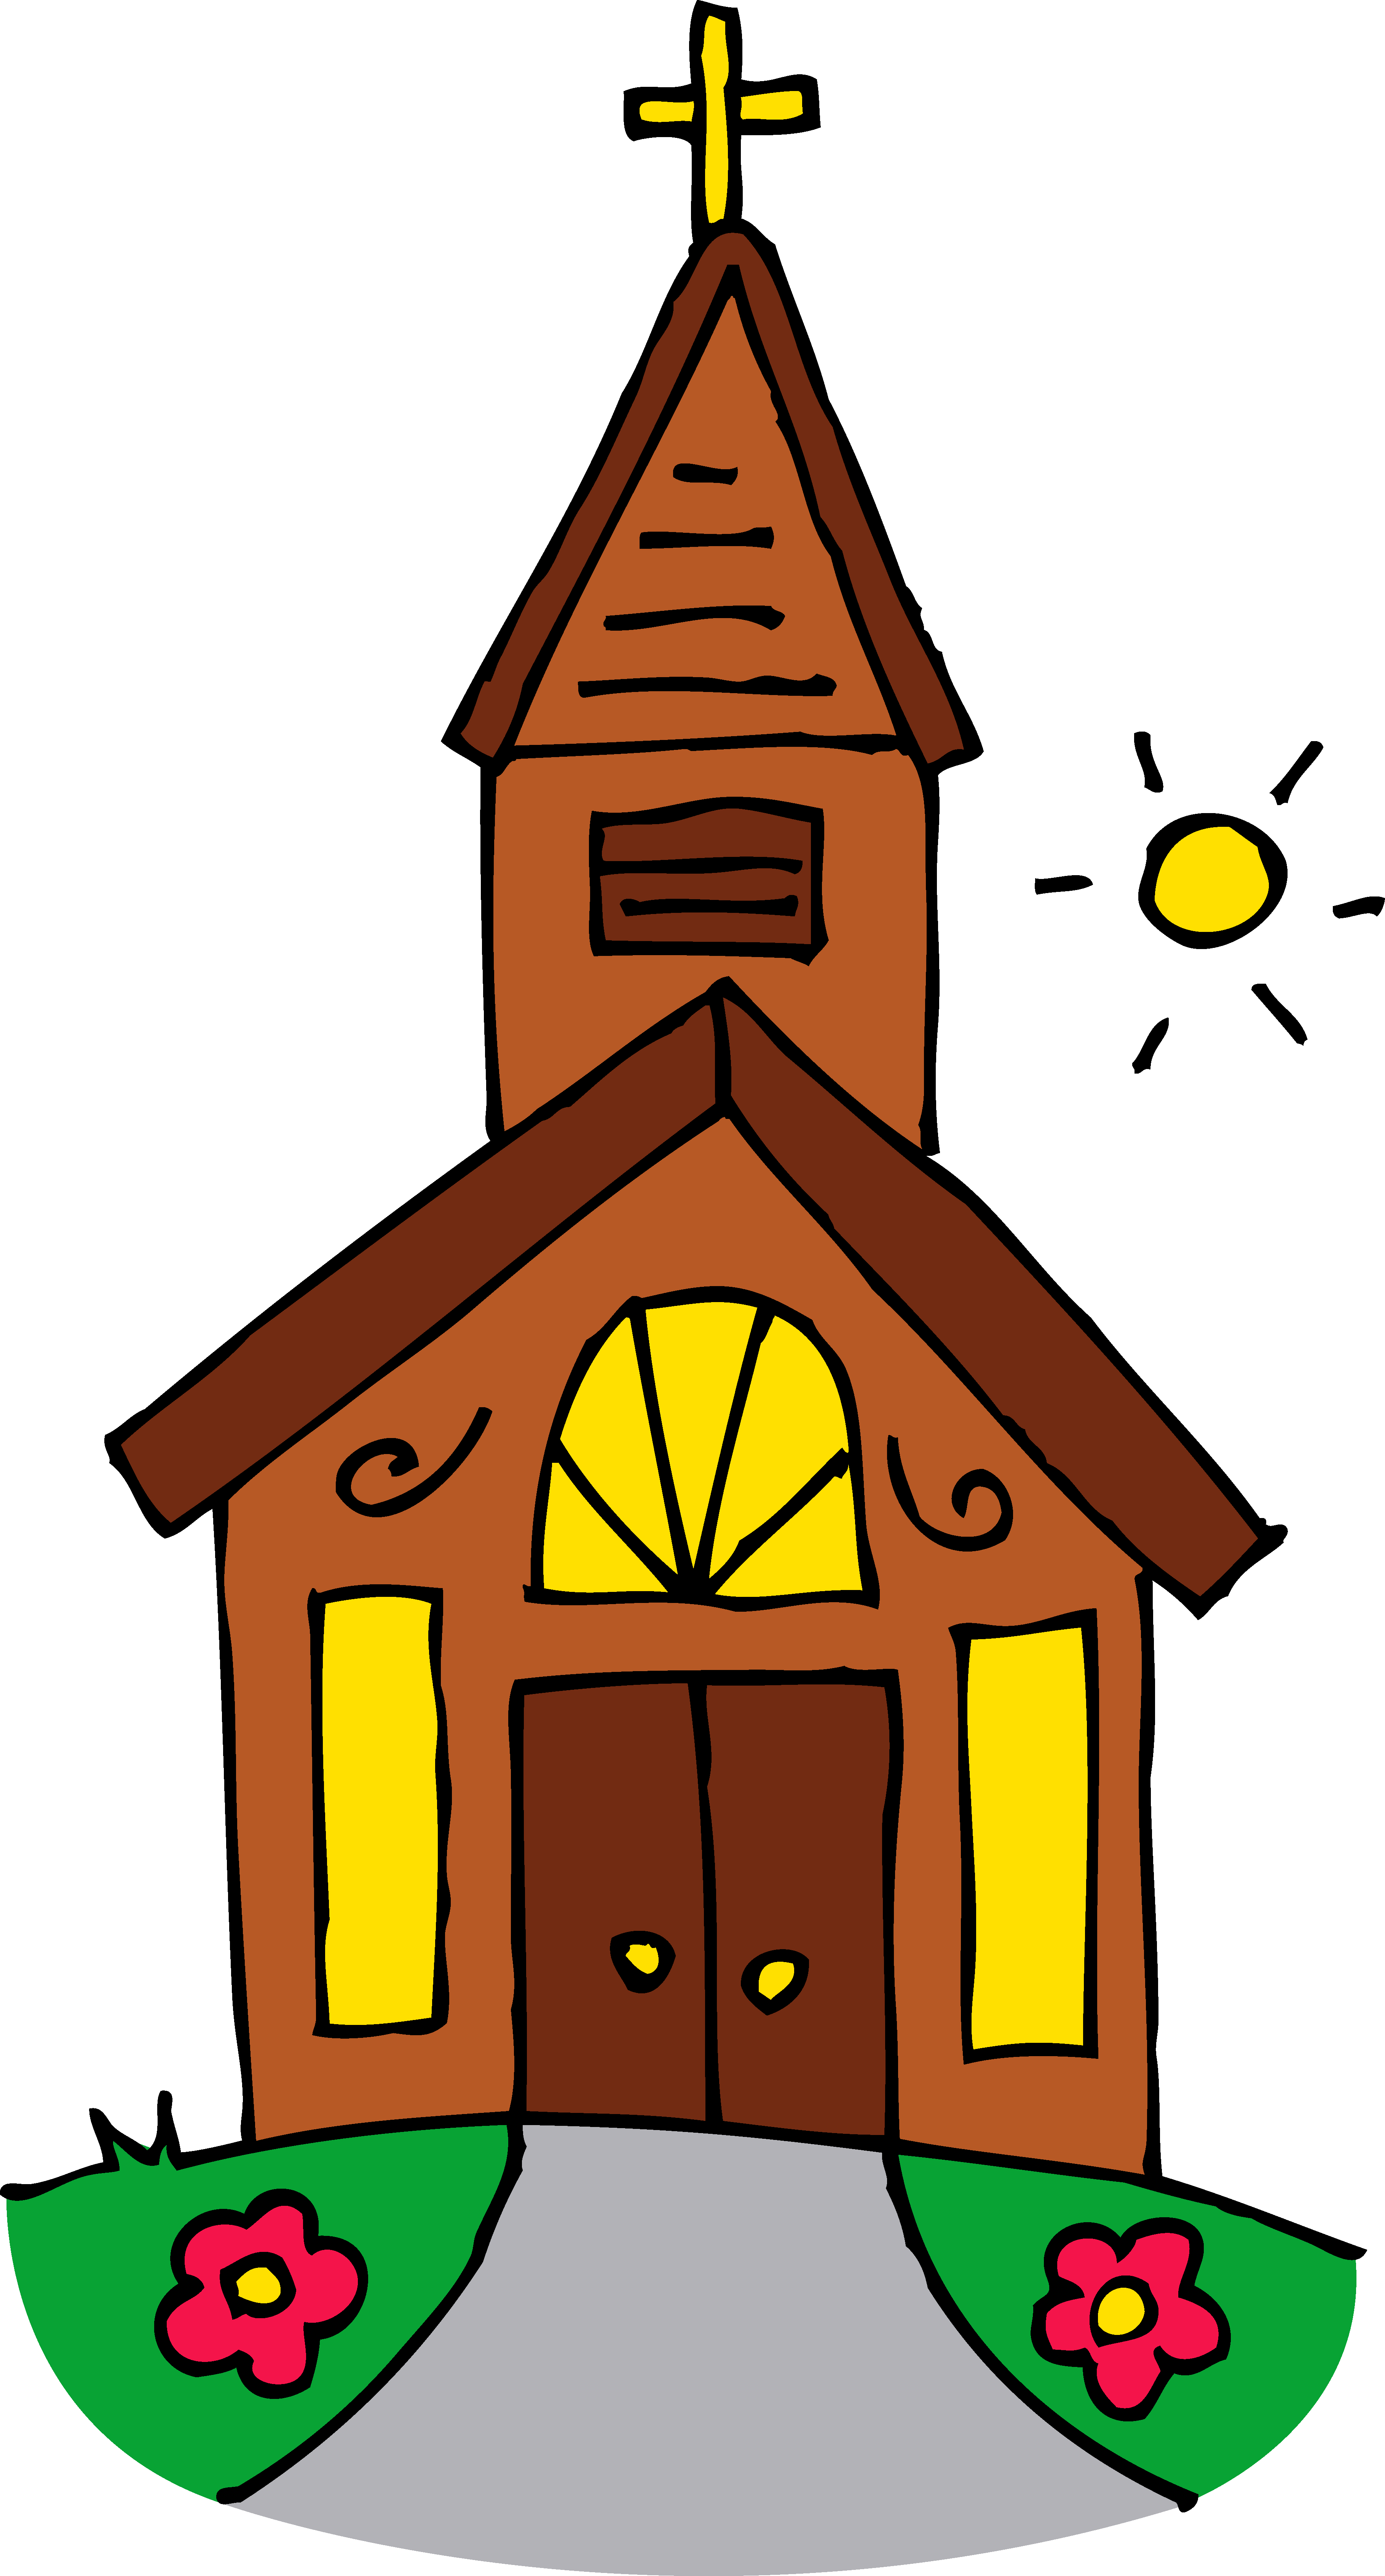 Buildings clipart colored. Little church on a